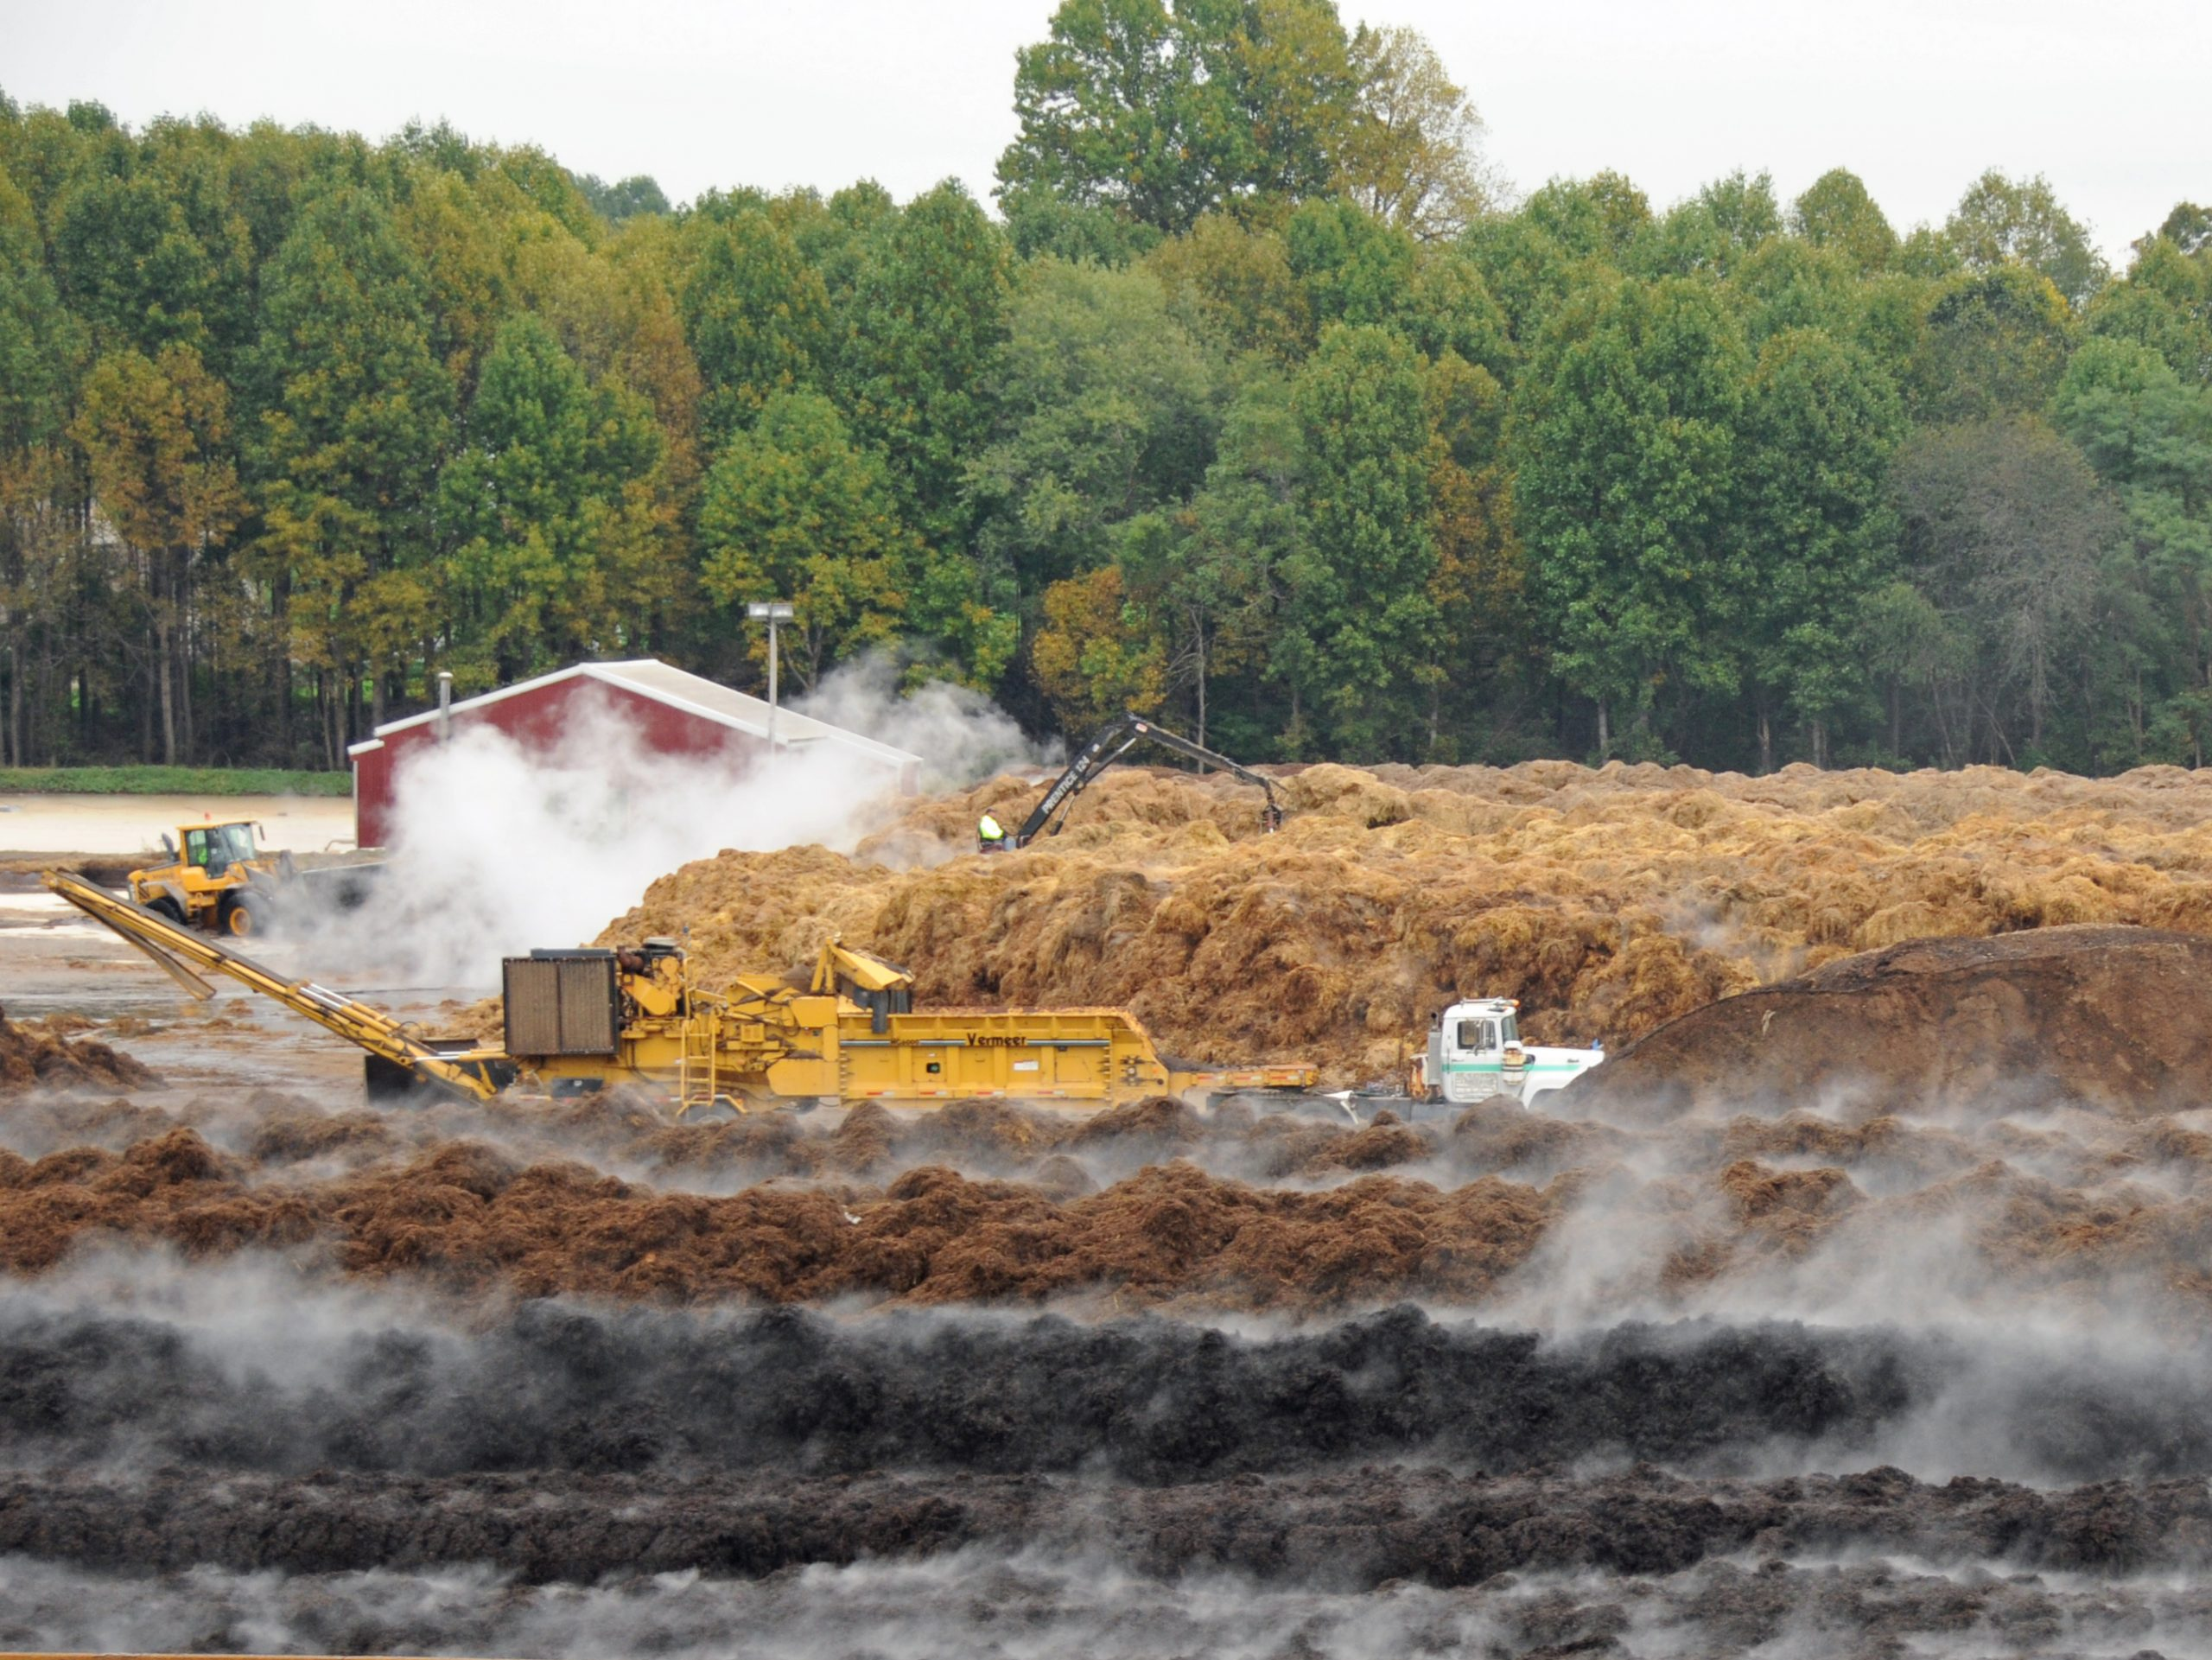 At an industrial compost facility that supplies the mushroom industry in Kennett Square, ground-up corn cobs are mixed with chicken manure, hay, cocoa shells and horse manure. Over time, growers have learned that mushrooms grow best with this blend of nutrients.